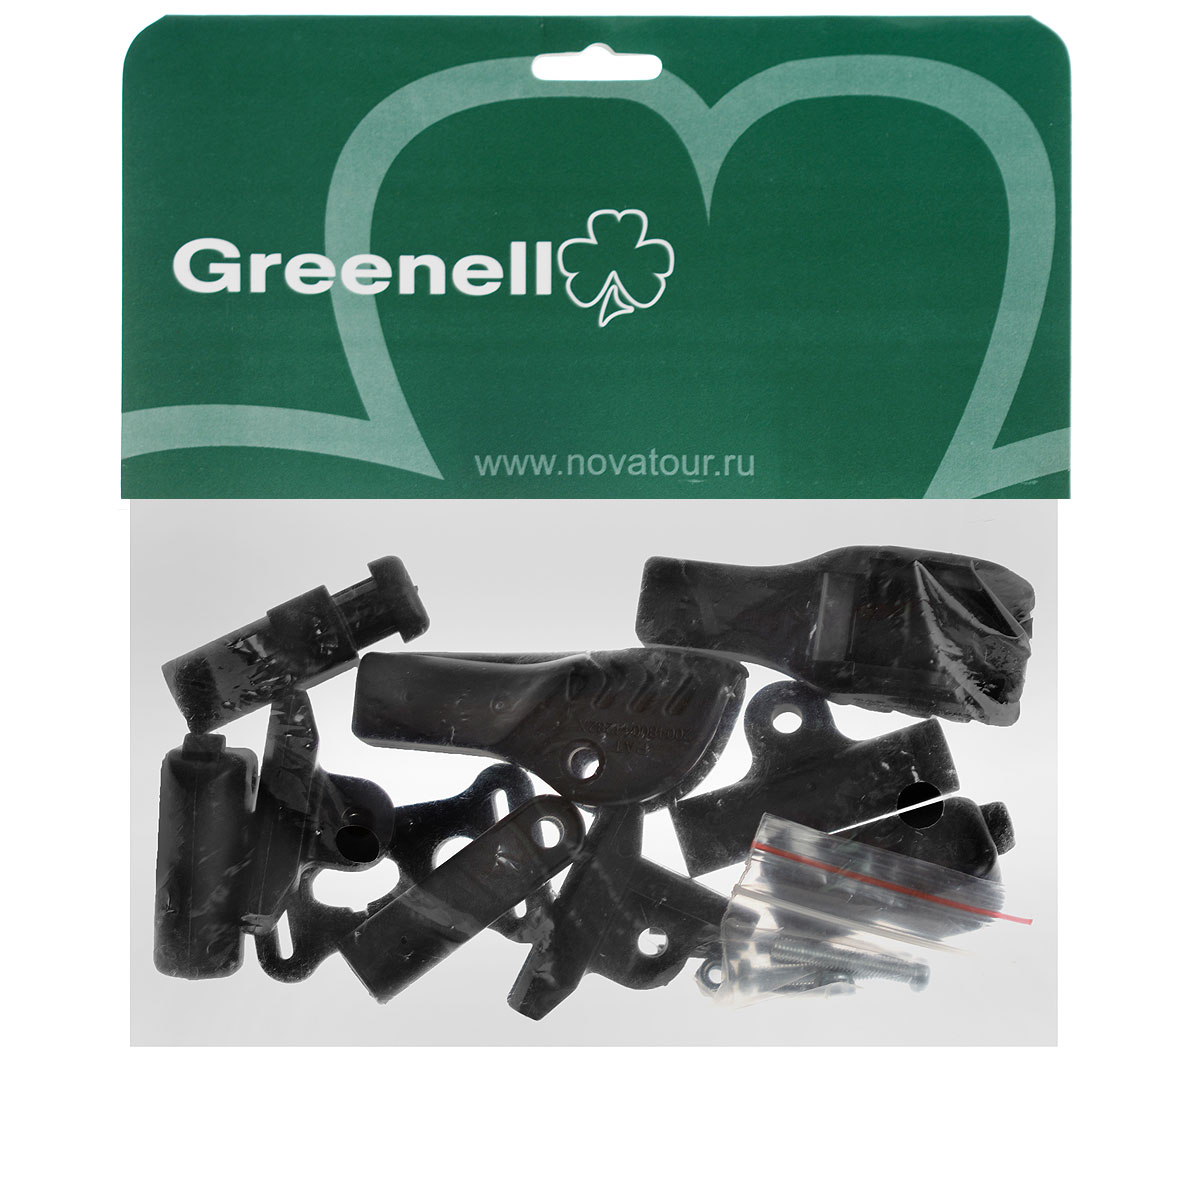 Ремкомплект Greenell №1, для палаток: Aughris 2, Castlerea 4, Clare 3, Dingle 3, Dingle light 3, Howth 4, Larne 2, Private, Tralee 2, Tralee 3 детские штаны other 3663 2015 1 2 3 4